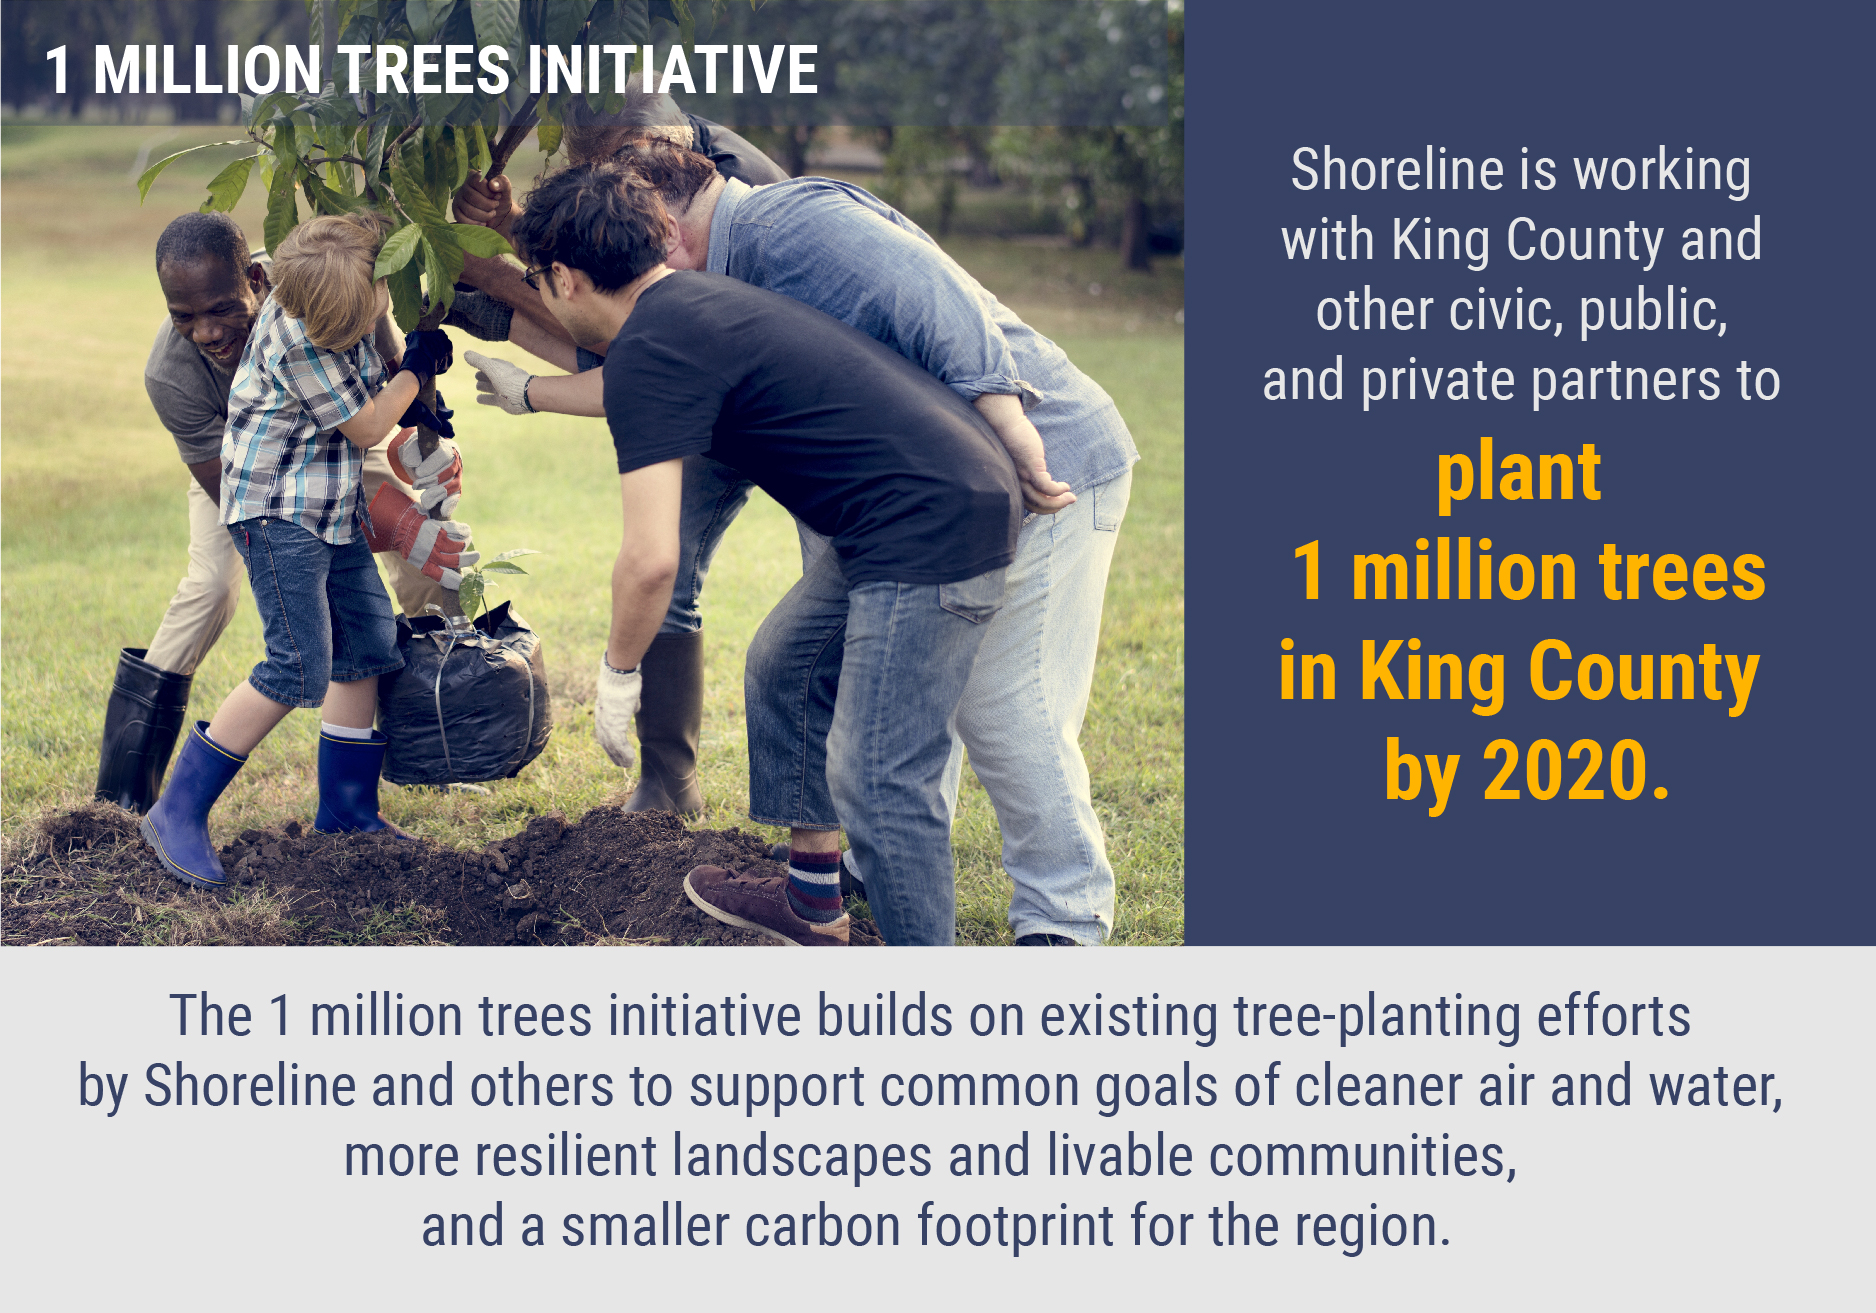 Shoreline is working with King County to plant 1 million trees by 2020.